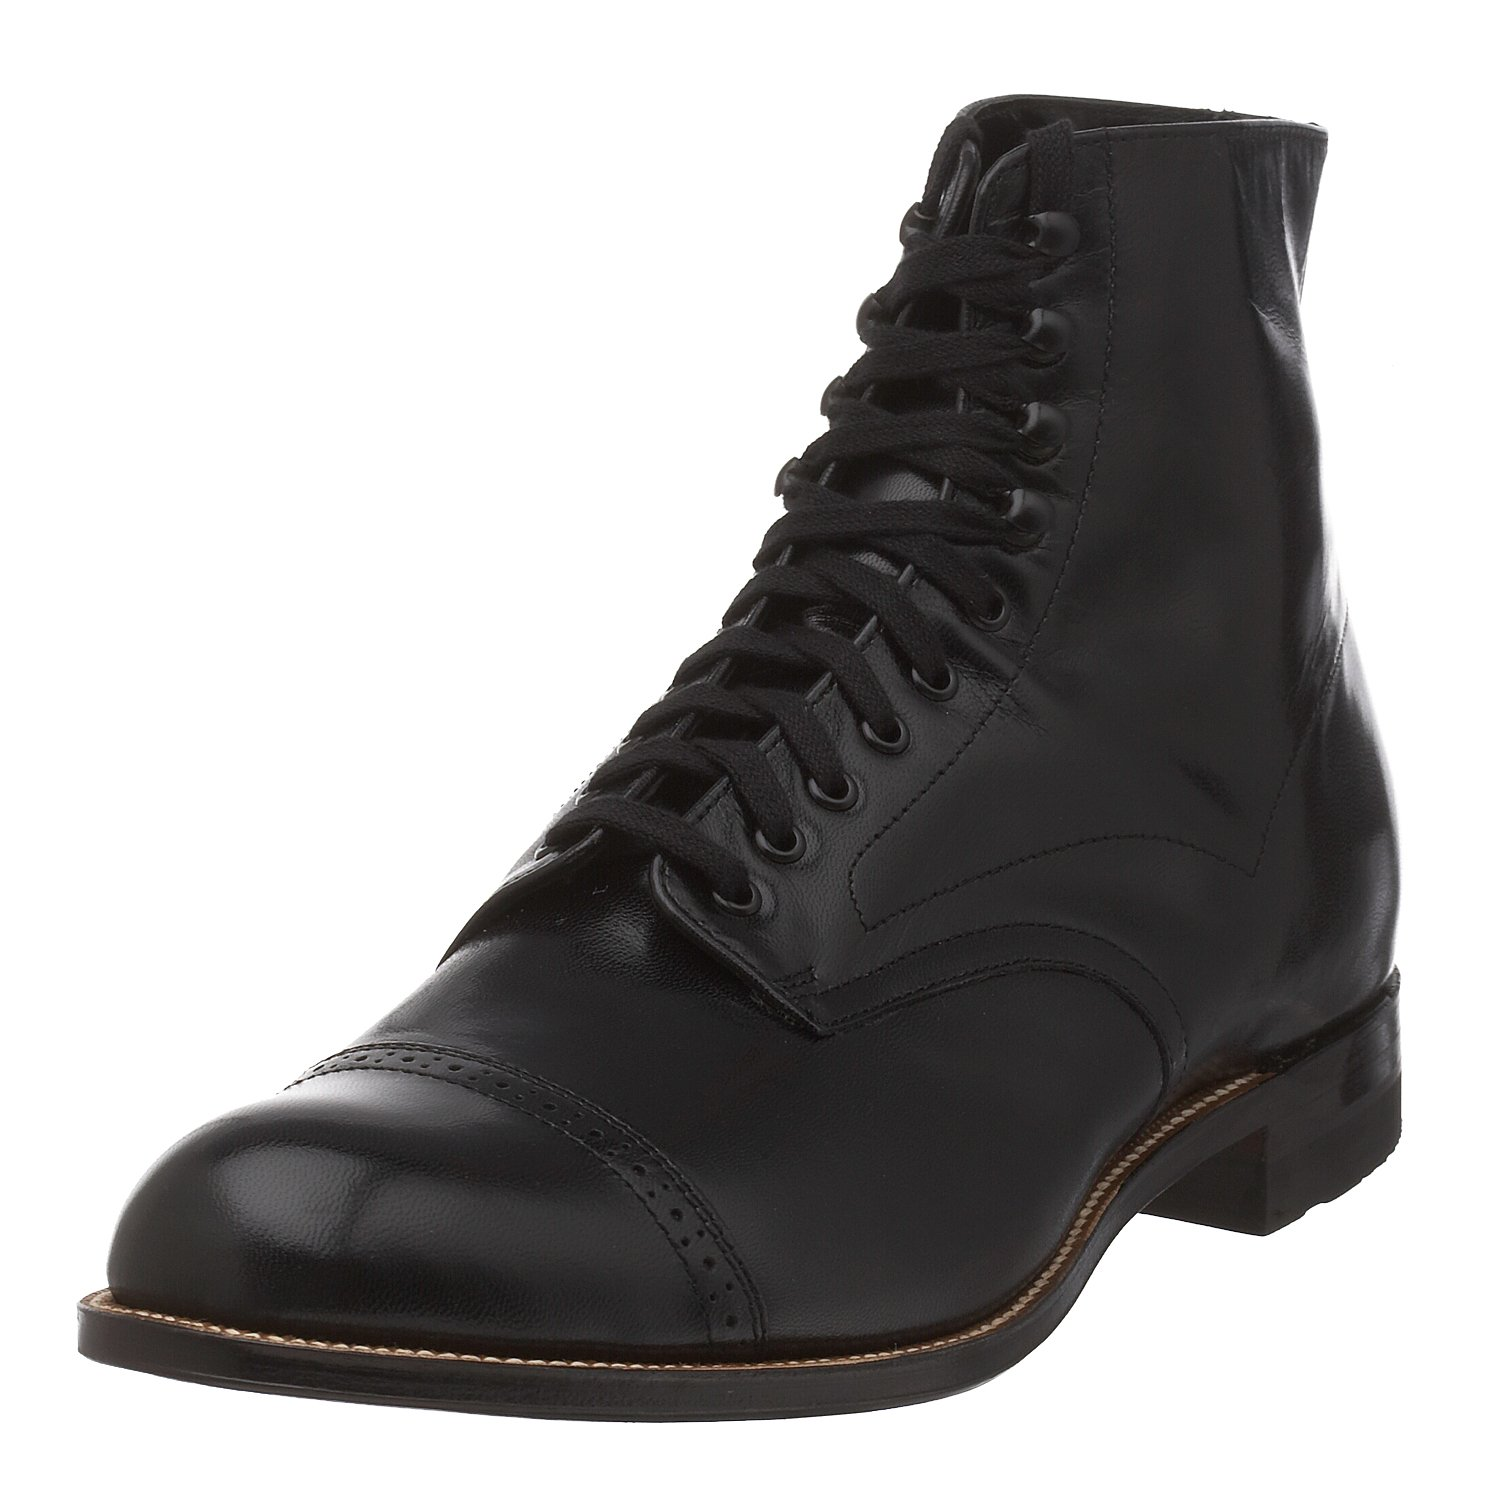 Victorian Men's Shoes & Boots- Lace Up, Spats, Chelsea, Riding UK - Stacy Adams Mens Madison Cap Toe Boot £96.11 AT vintagedancer.com